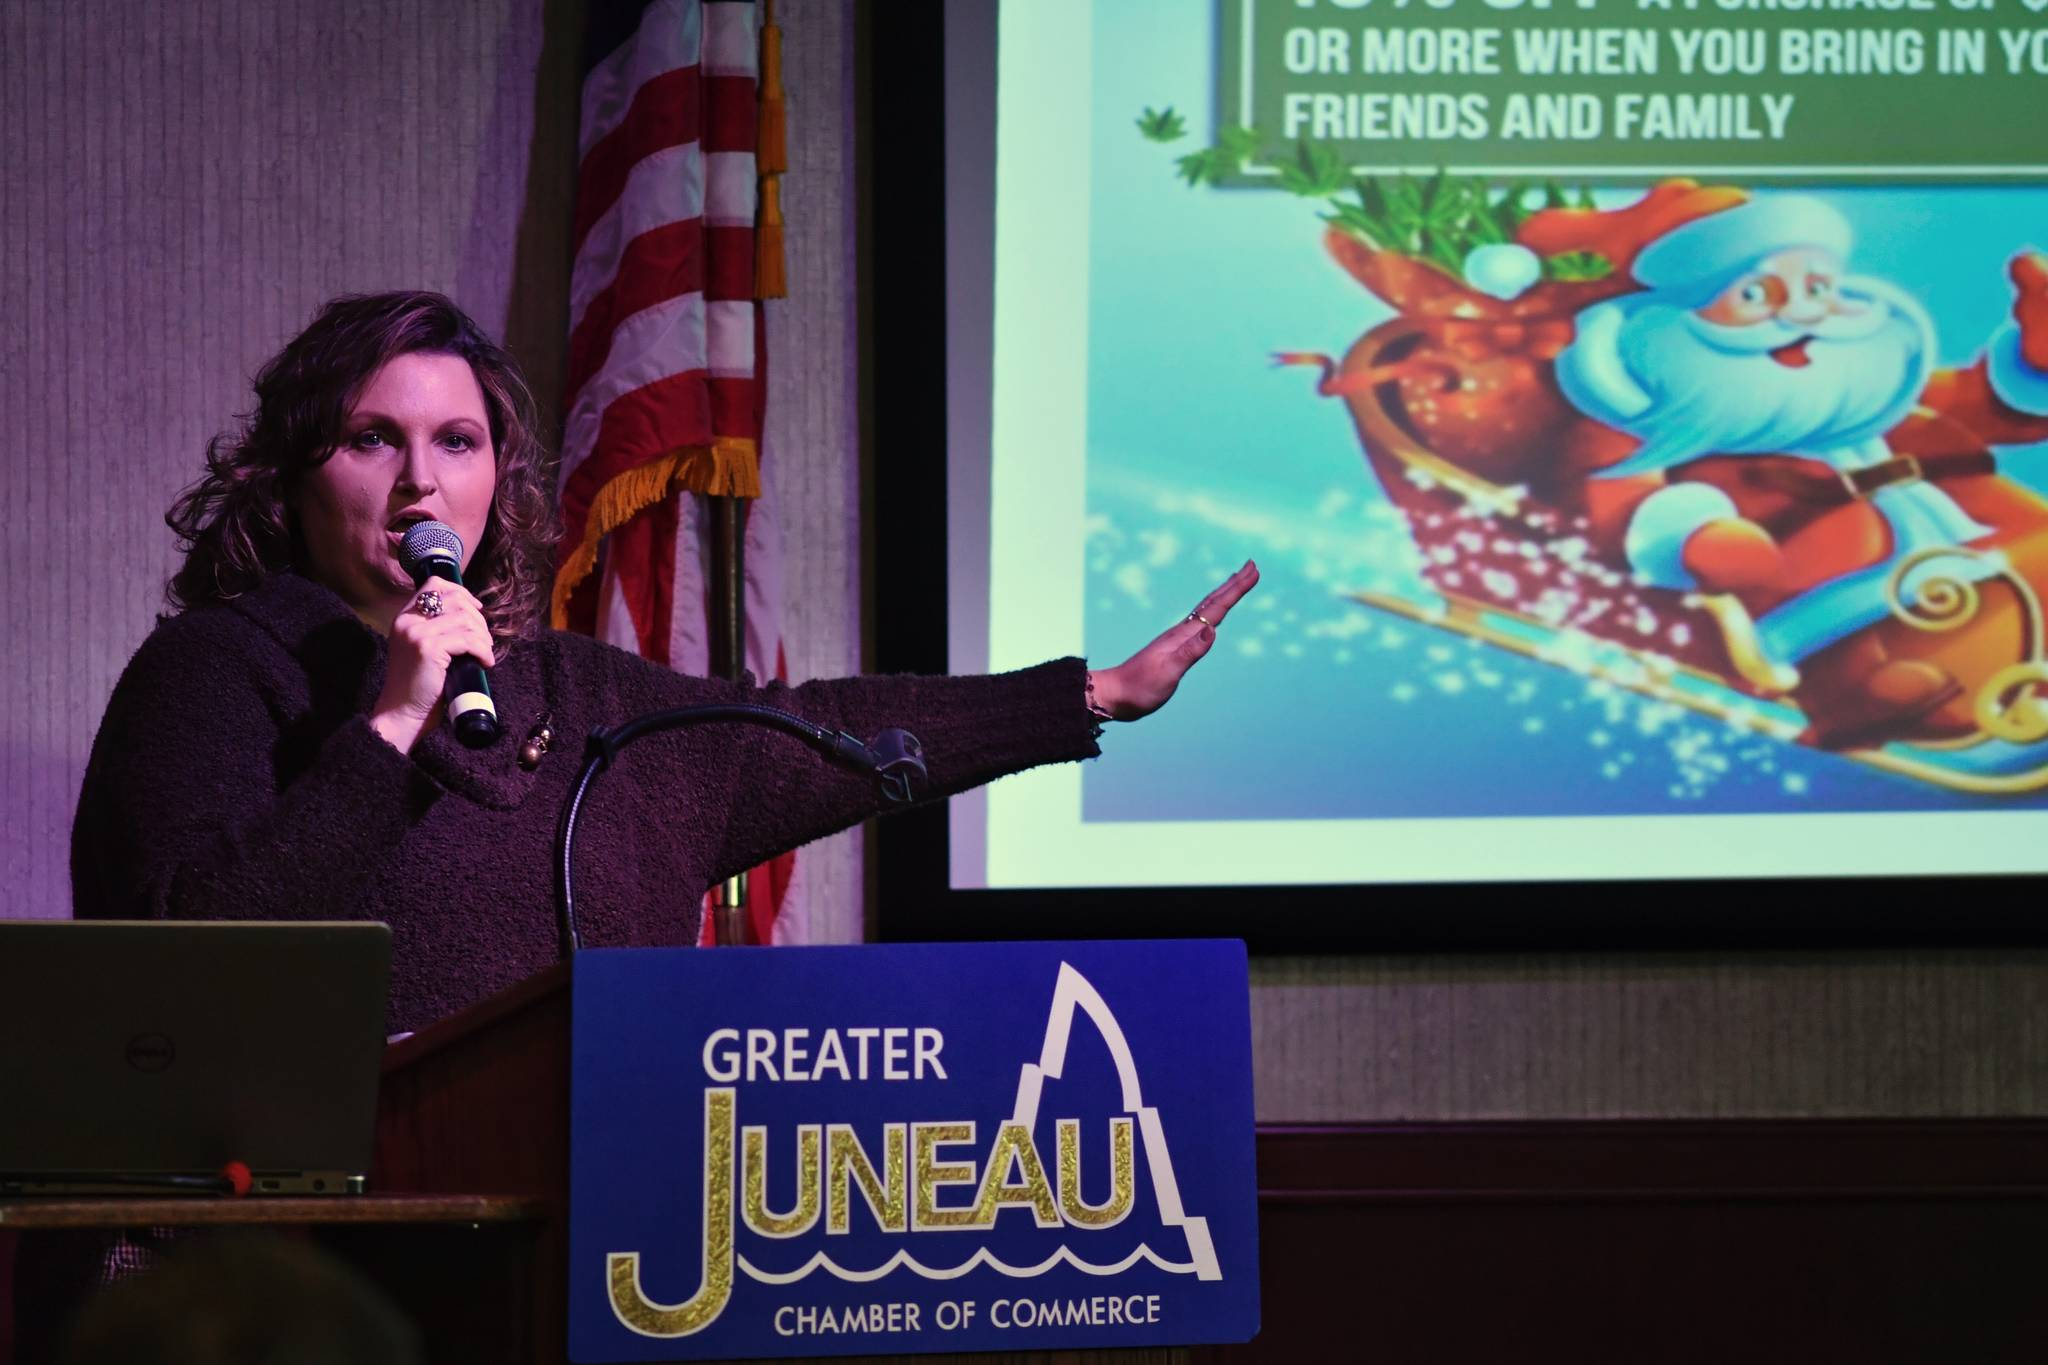 Jo McGuire, Senior Project Manager of Tongass Substance Screening Inc., speaks to the Juneau Chamber of Commerce during their weekly luncheon at Hangar Ballroom on Thursday, March 7, 2019. (Michael Penn | Juneau Empire)